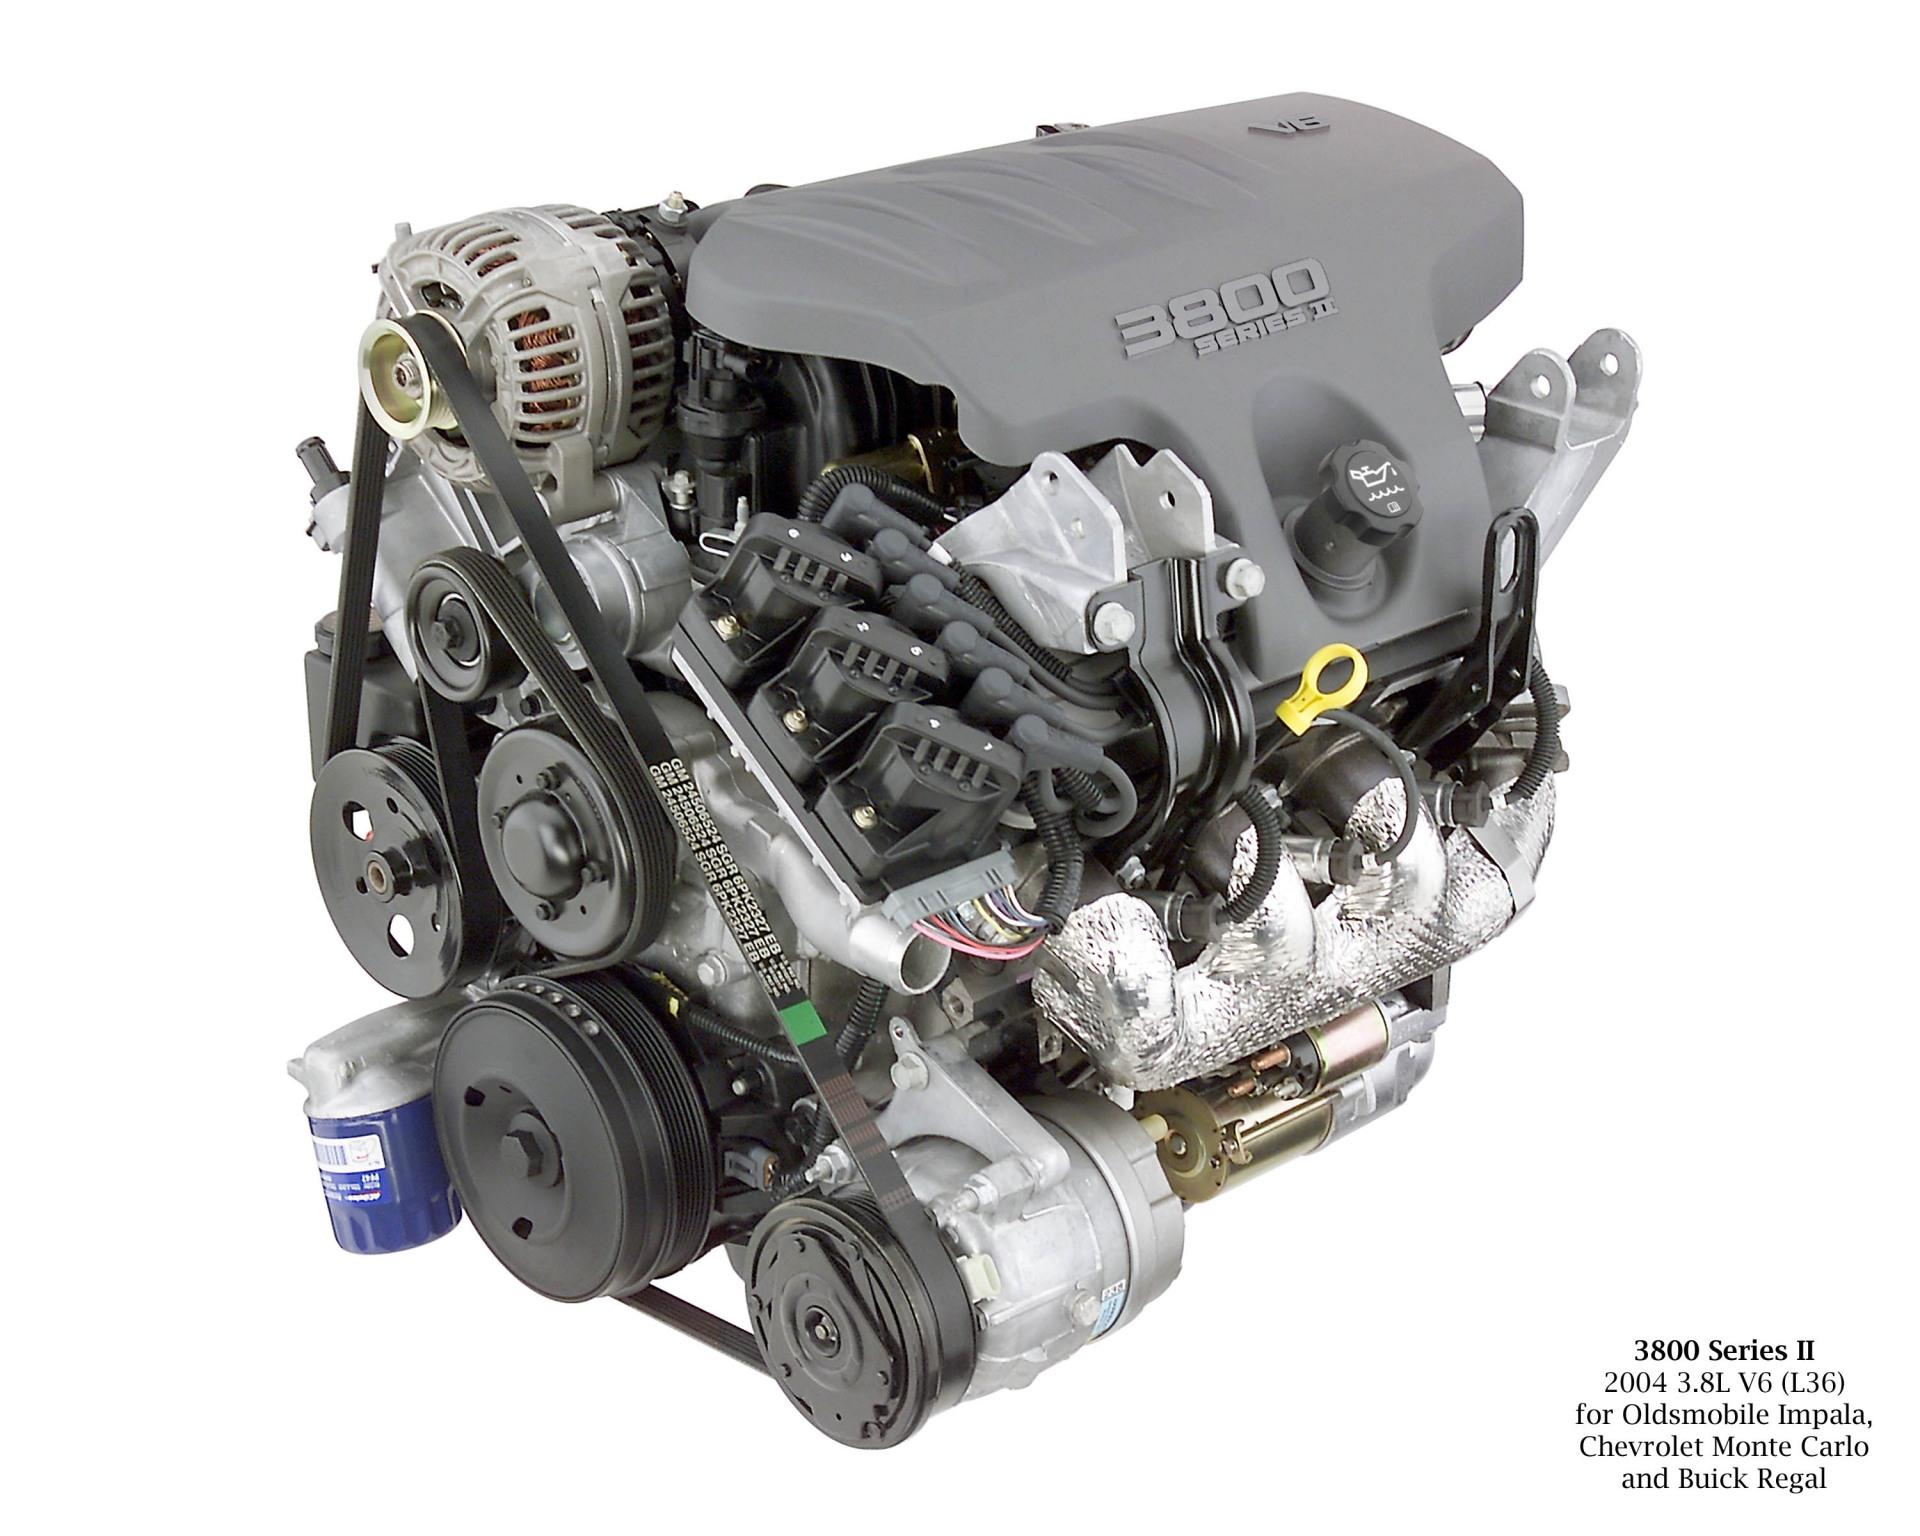 Buick Regal: Starting the Engine